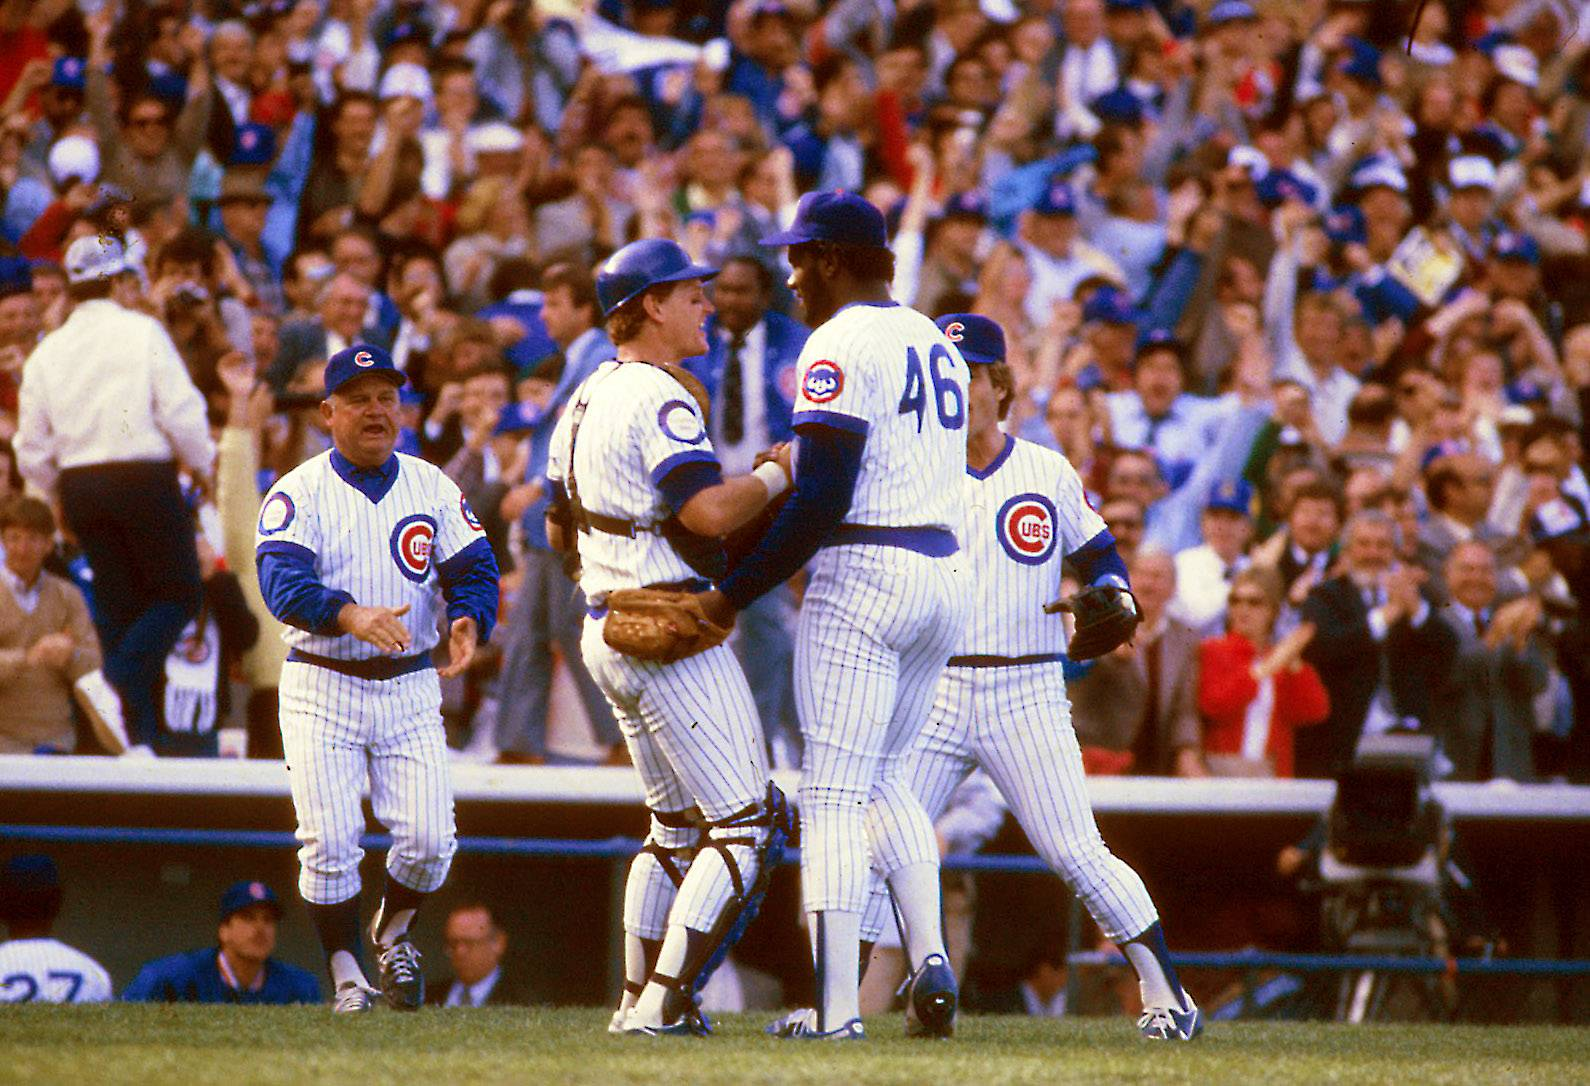 Chicago Cubs' Lee Smith is greeted by his teammates as he walks to the dugout during the October 1984 National League championship series against the San Diego Padres. Smith was elected to the Basebal Hall of Fame Sunday, and he said he'd love to go in depicted in a Chicago Cubs cap.